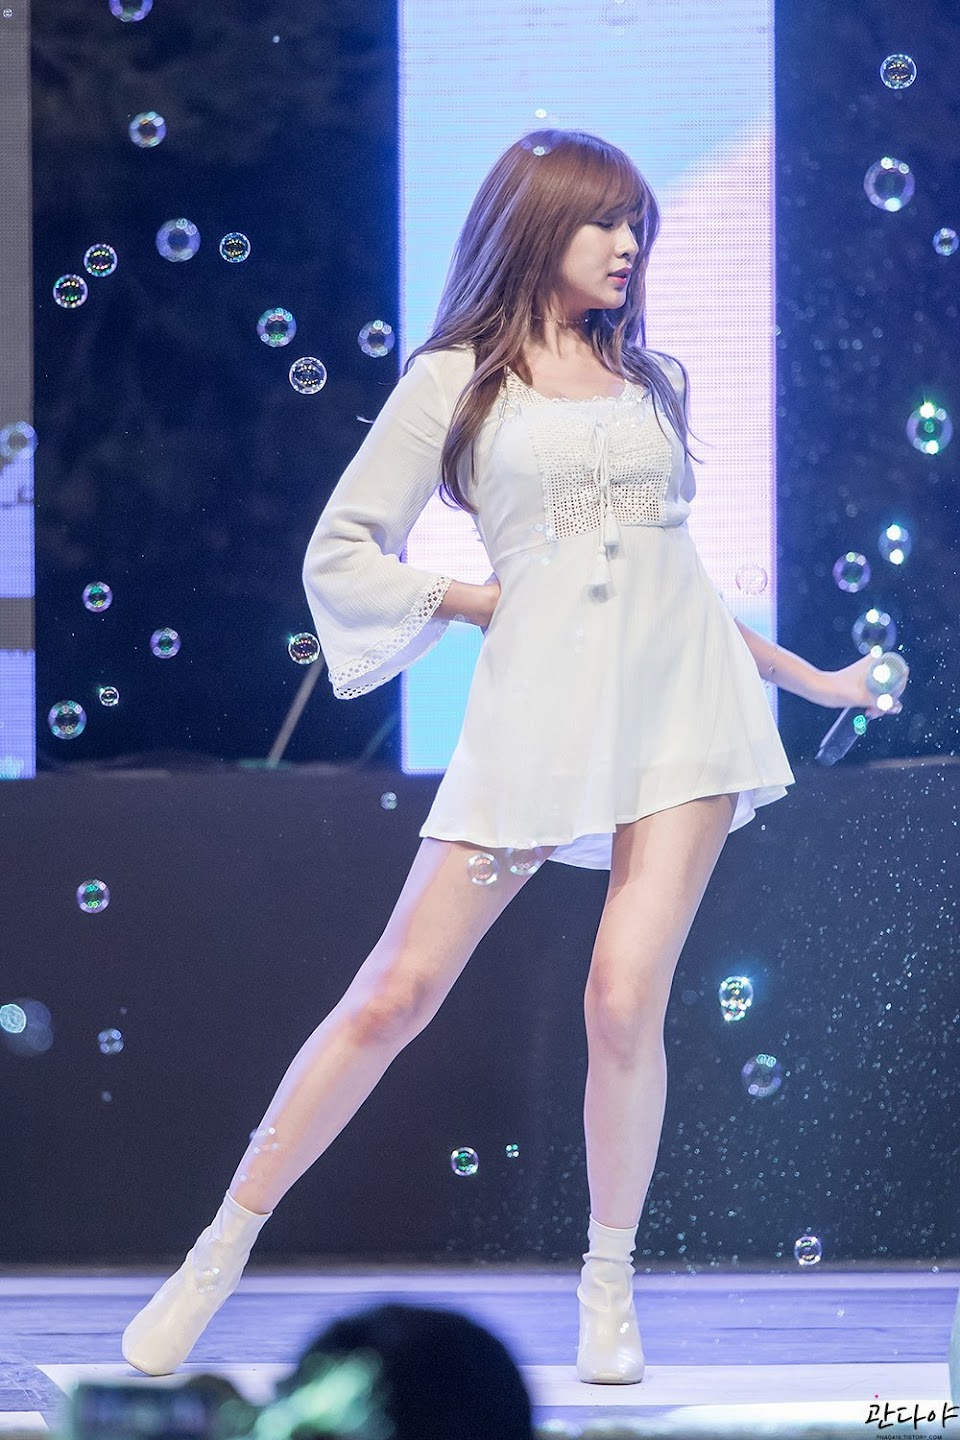 hayoung dress 23